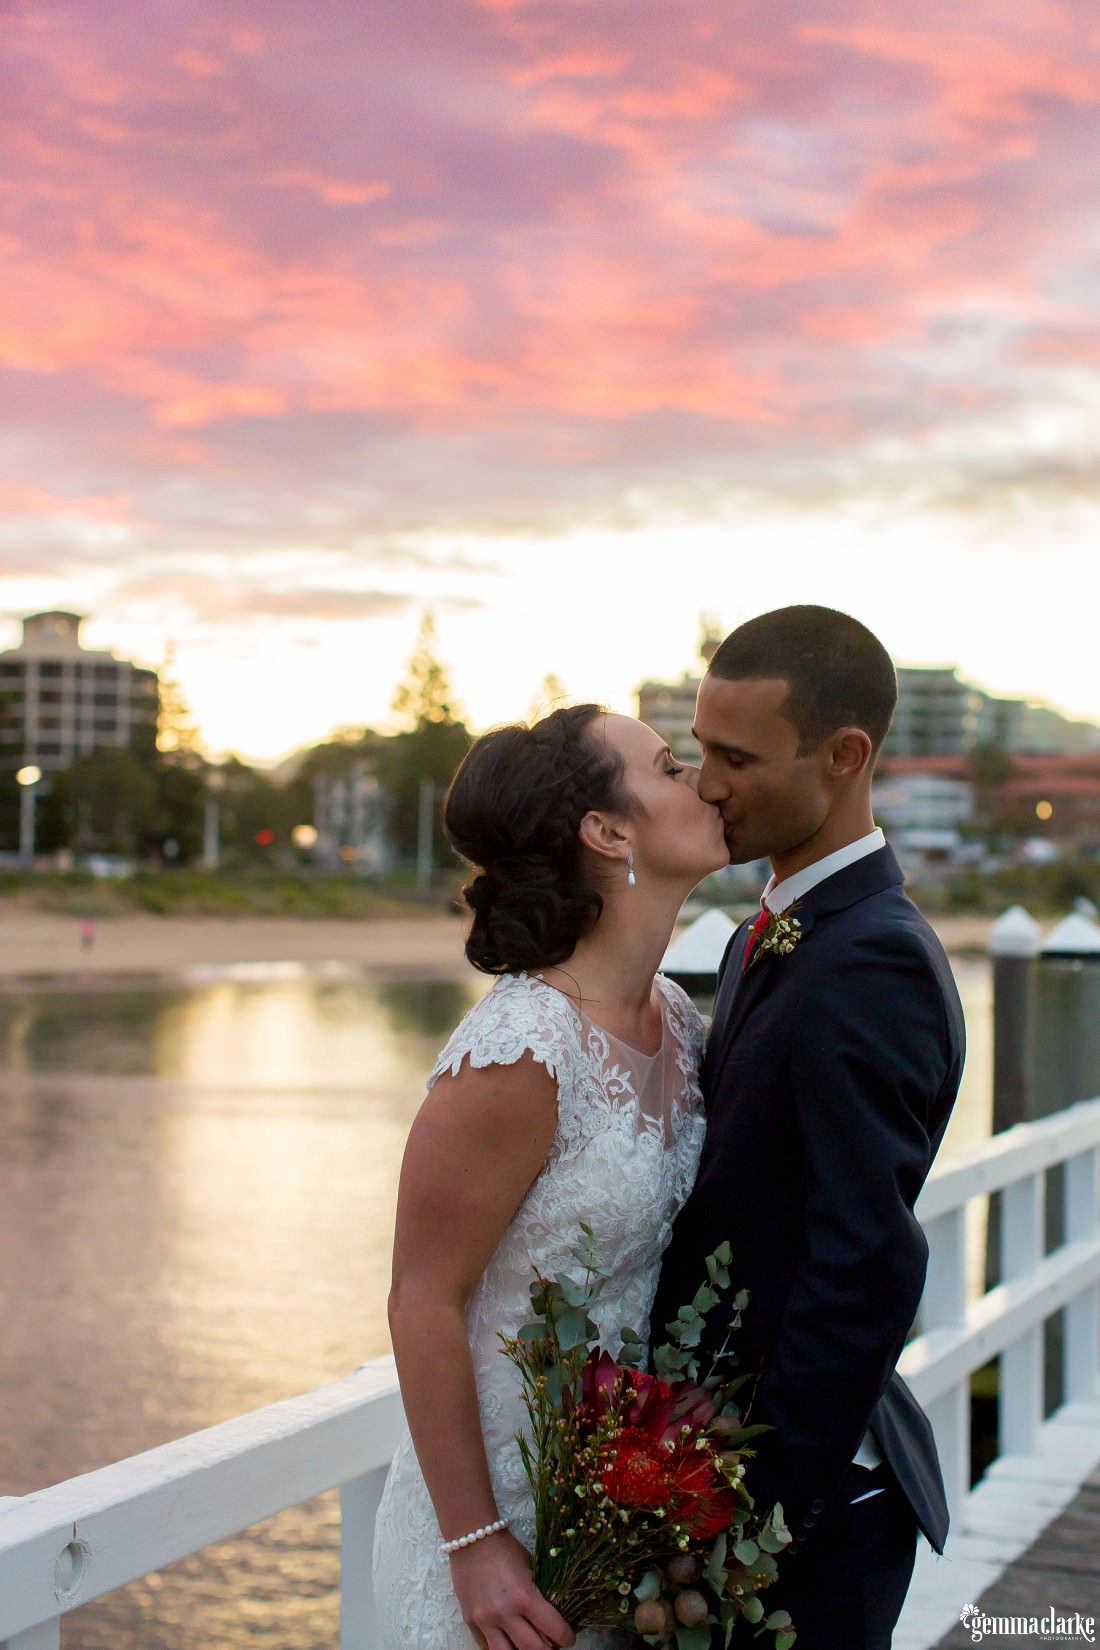 A bride and groom kiss while standing on a wharf as the sun sets in the background